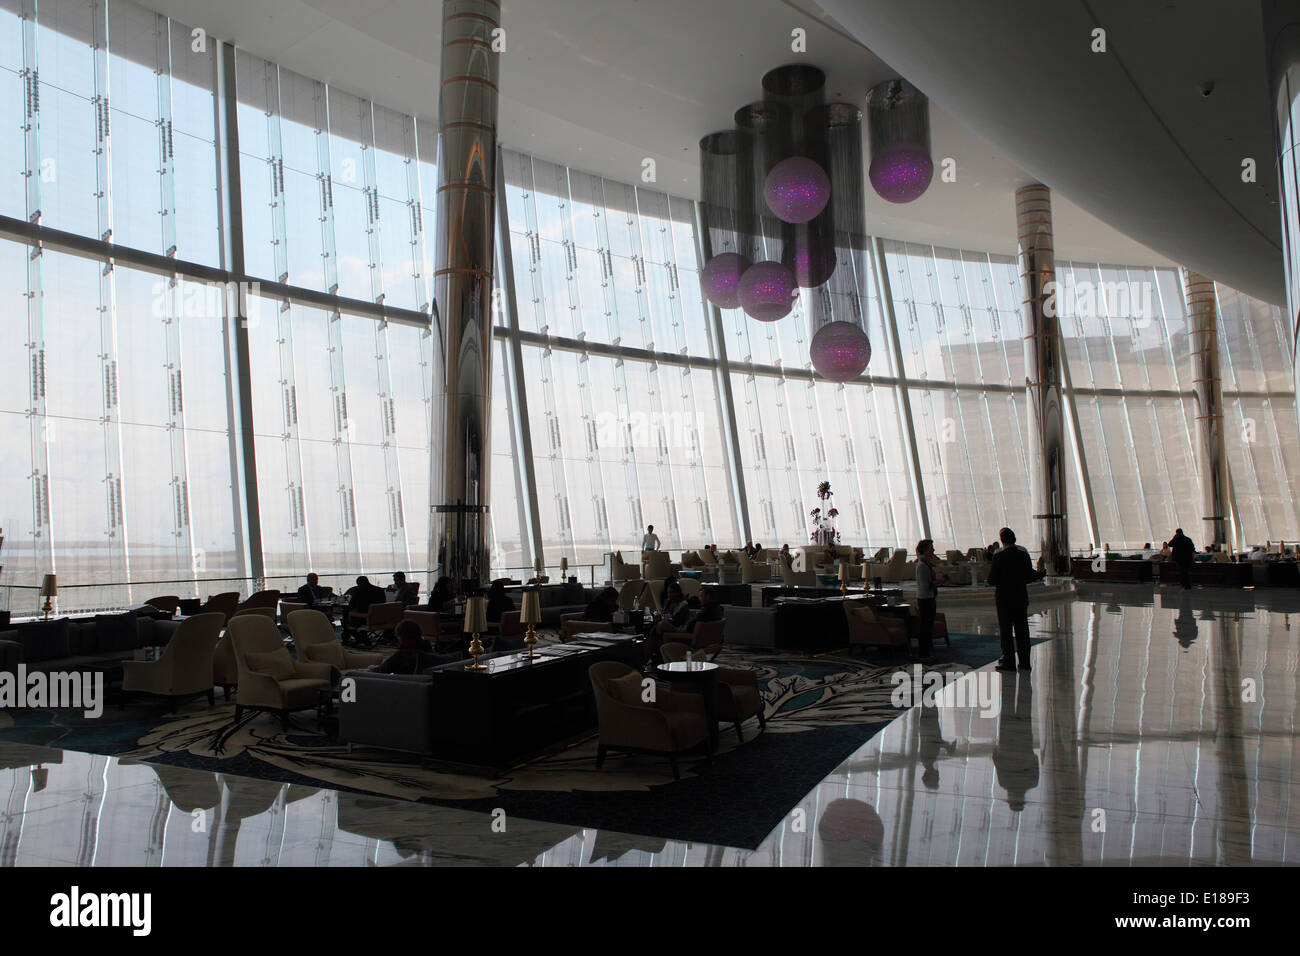 The foyer of the Jumeirah at Etihad Towers hotel in Abu Dhabi. - Stock Image